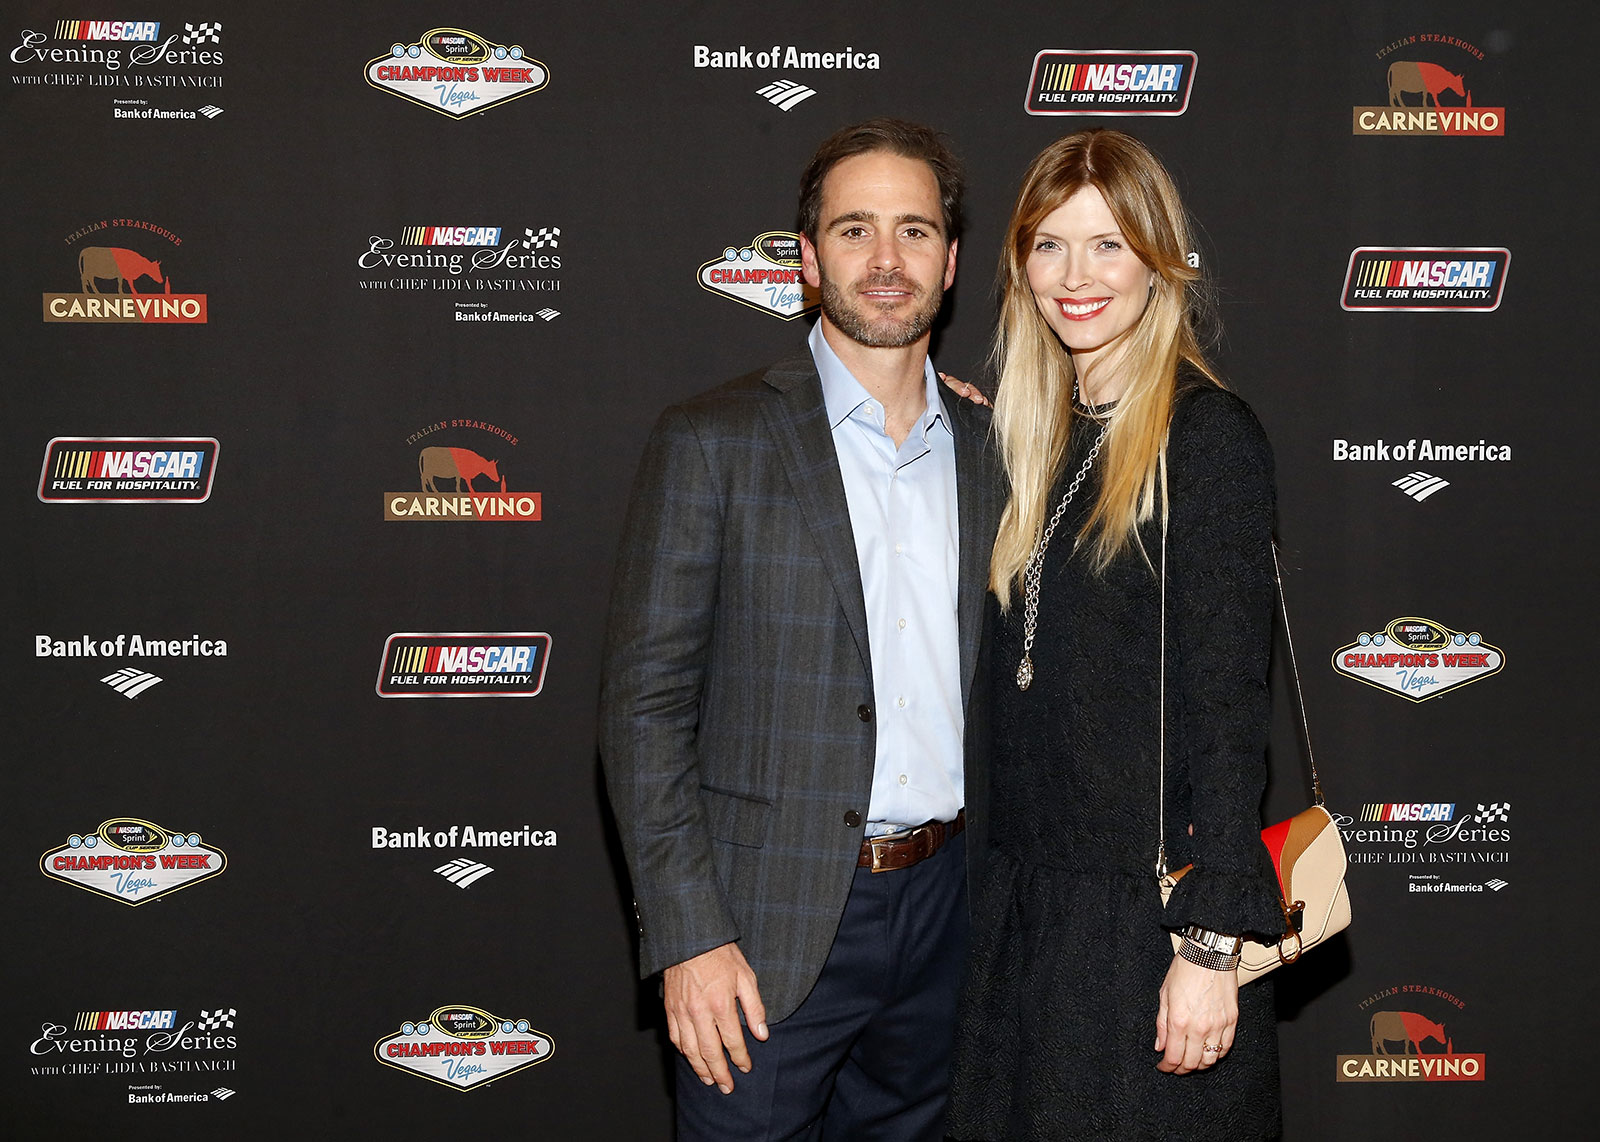 2013championsweek_evening-series-jimmie-chandra-johnson